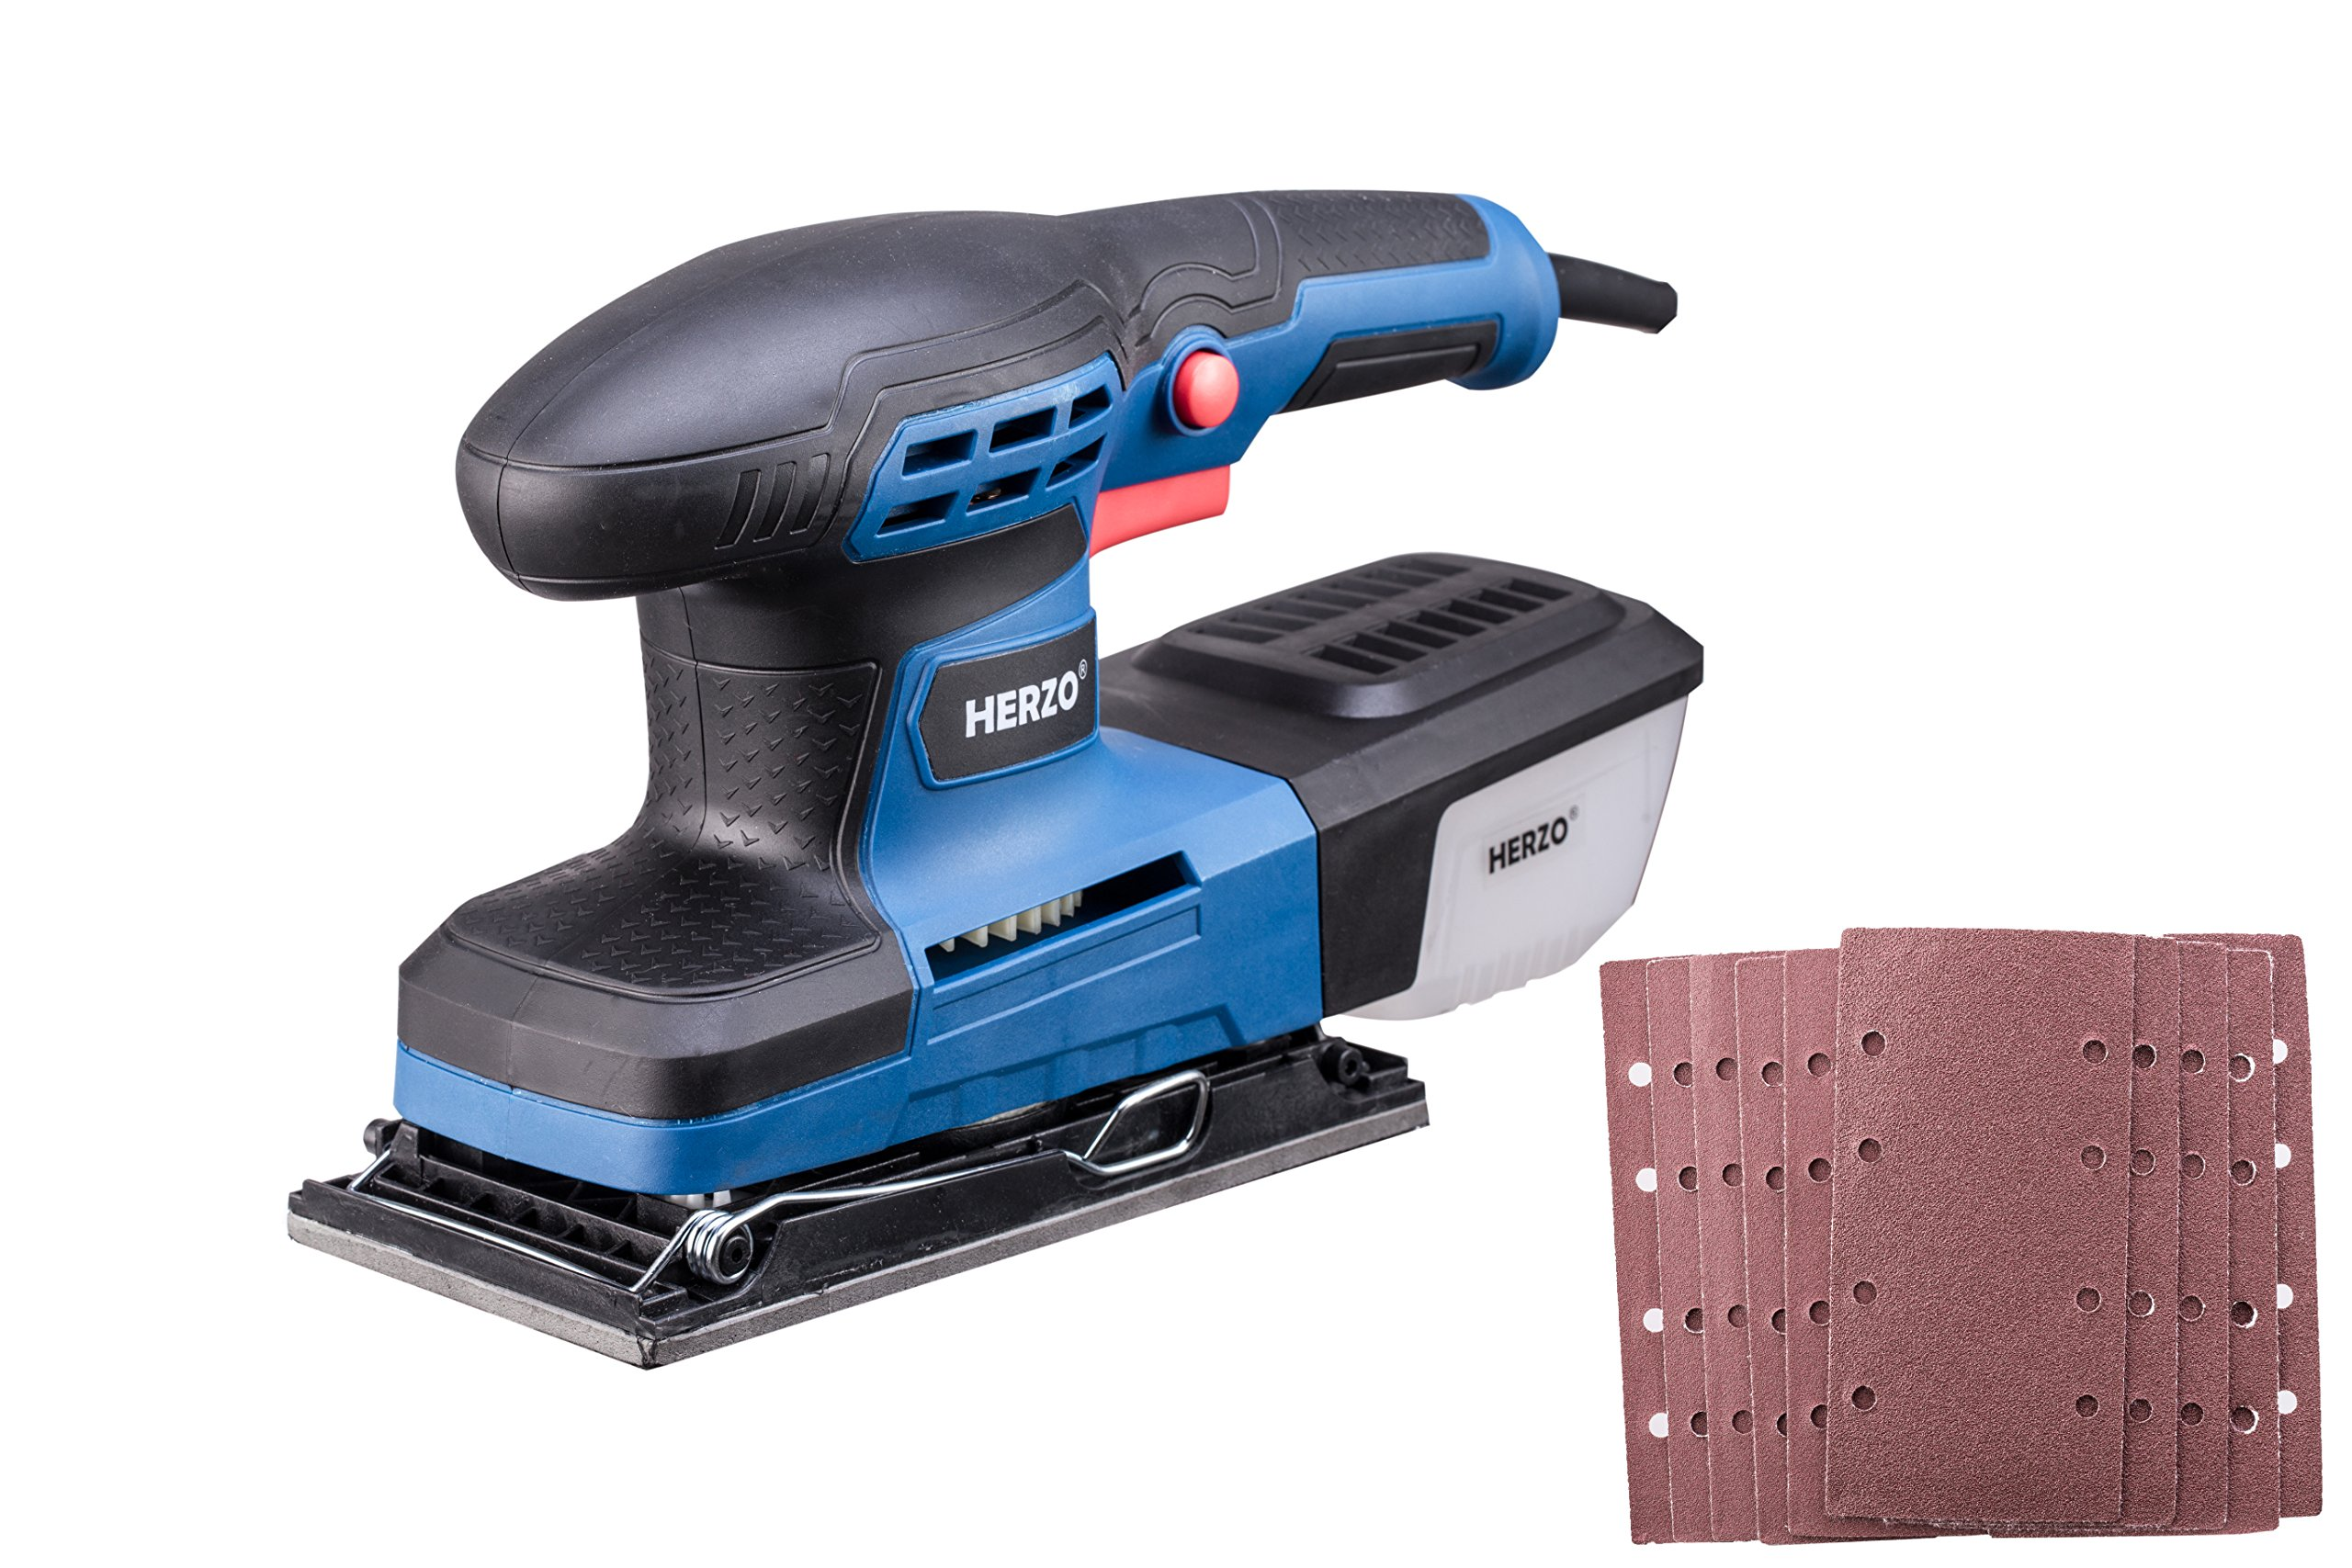 Sheet Sander HERZO 1/3 Finishing Sander with Self-Dust Collection Box, Hook-and-Loop Base Pad and 10 Pcs Sandpaper 2.2A